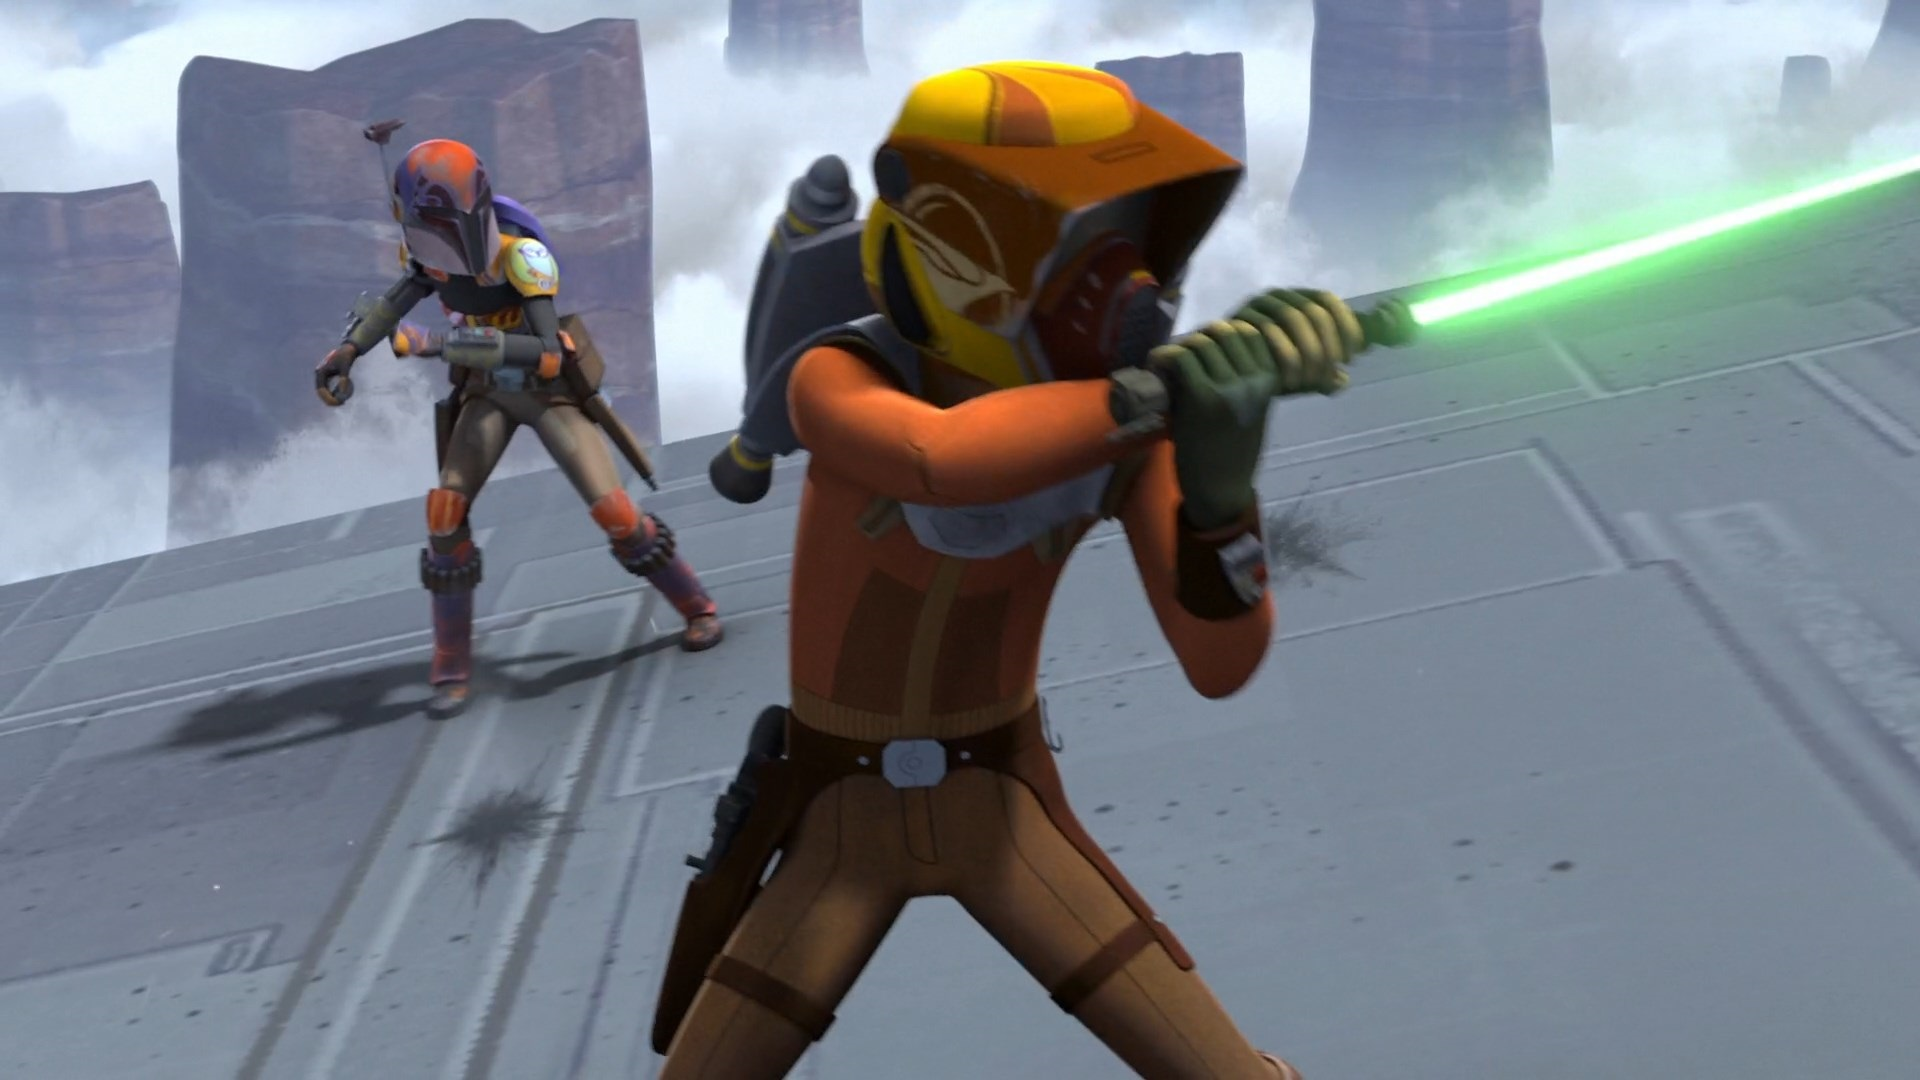 ARGENTeaM Star Wars Rebels 2014 S04E03 In The Name Of The Rebellion 1